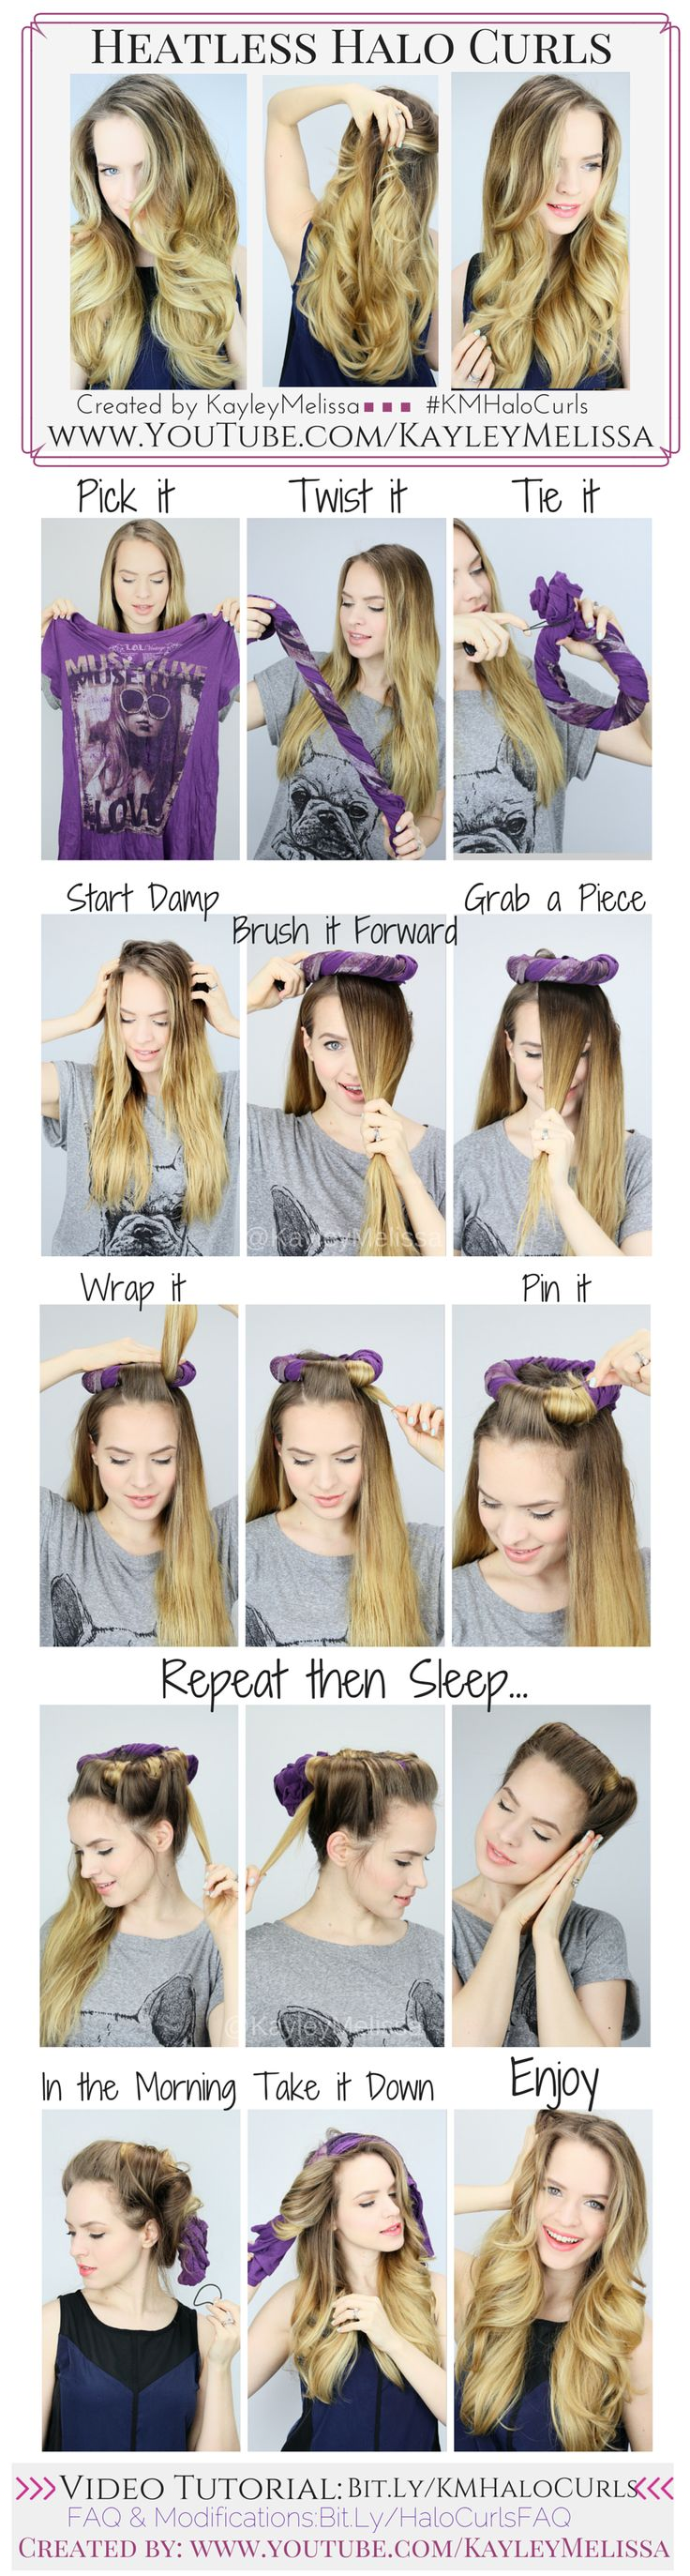 337 best Hairstyles images on Pinterest